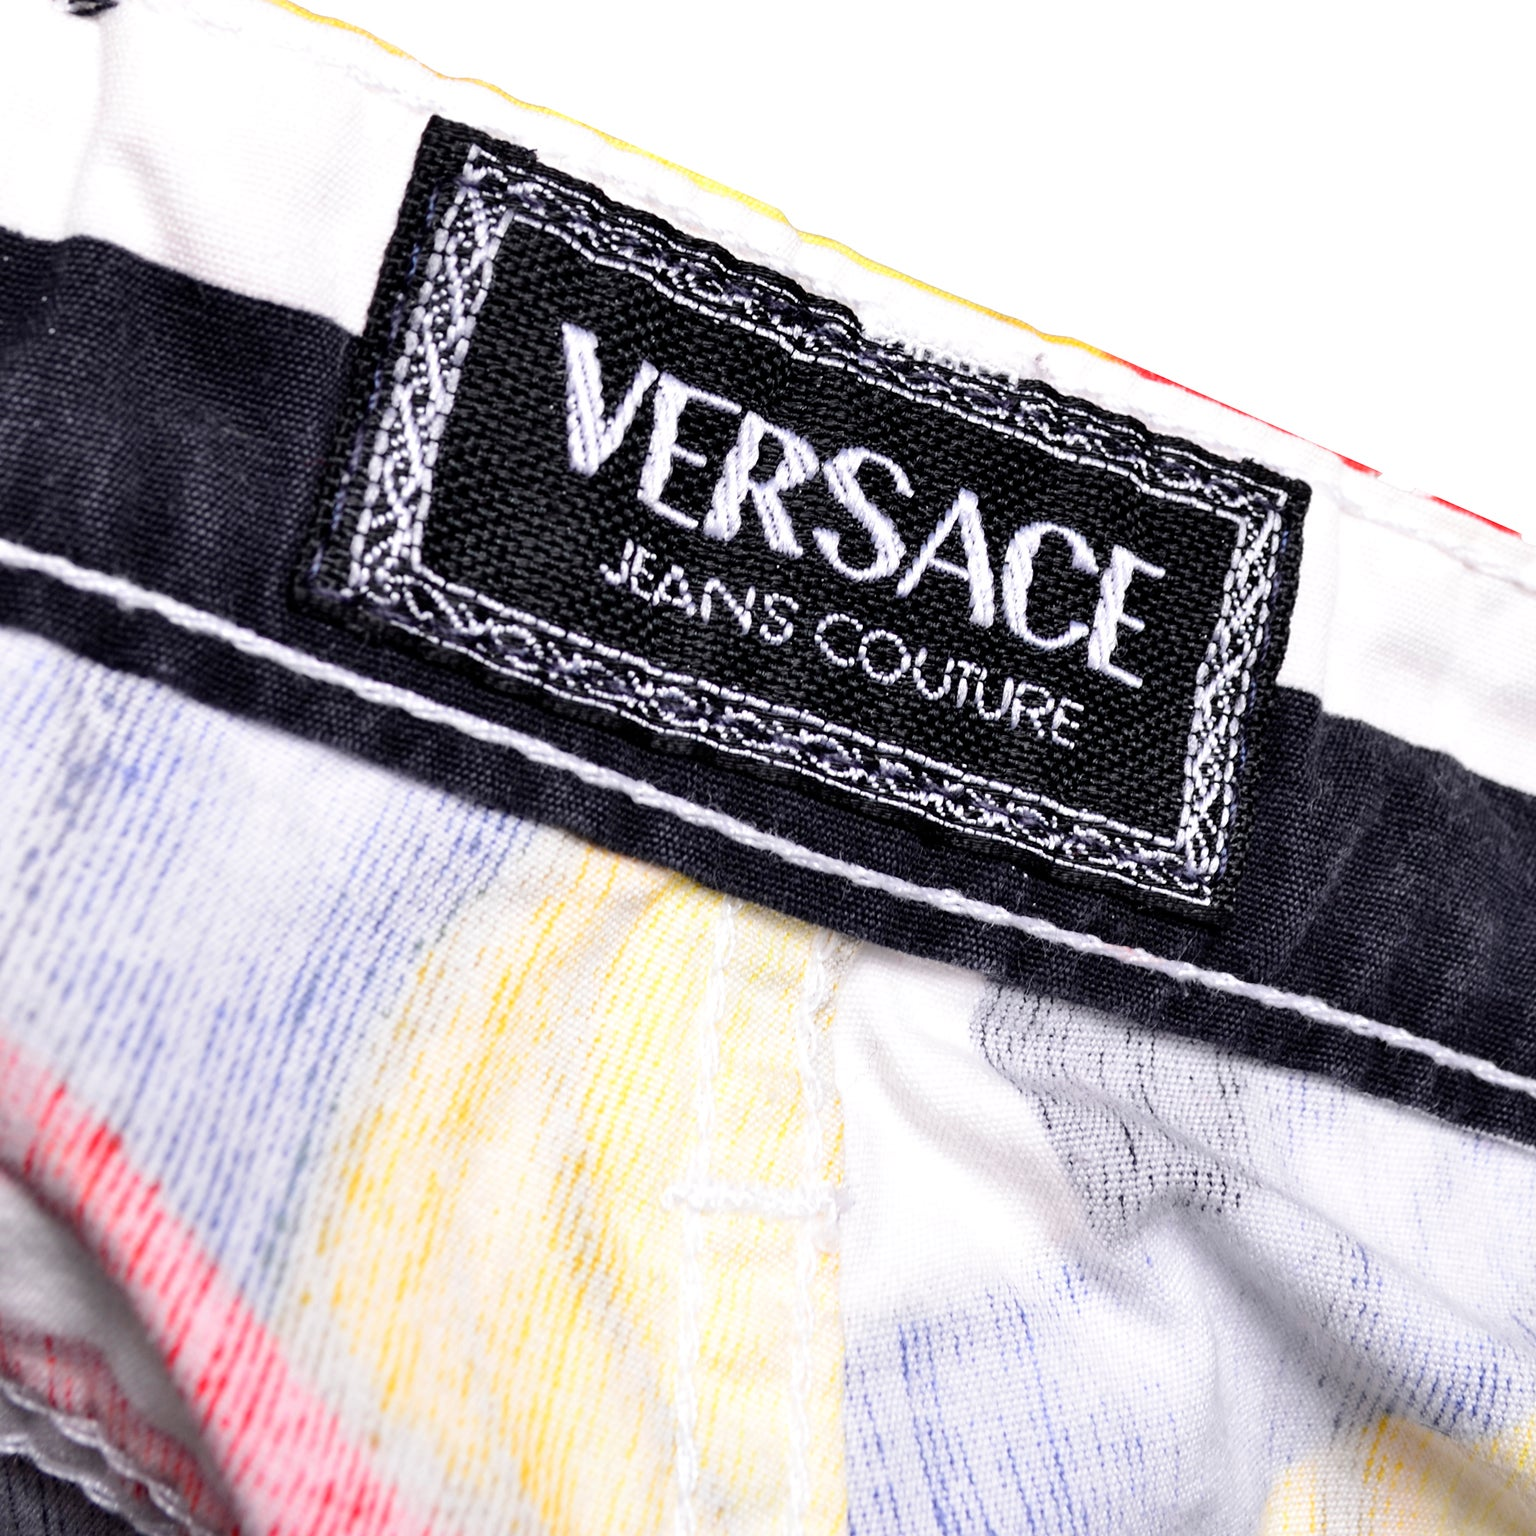 cd01bf2d0e09 Rare Vintage Gianni Versace Jeans Couture Pants W Novelty Flag Print Size  26 XS at 1stdibs